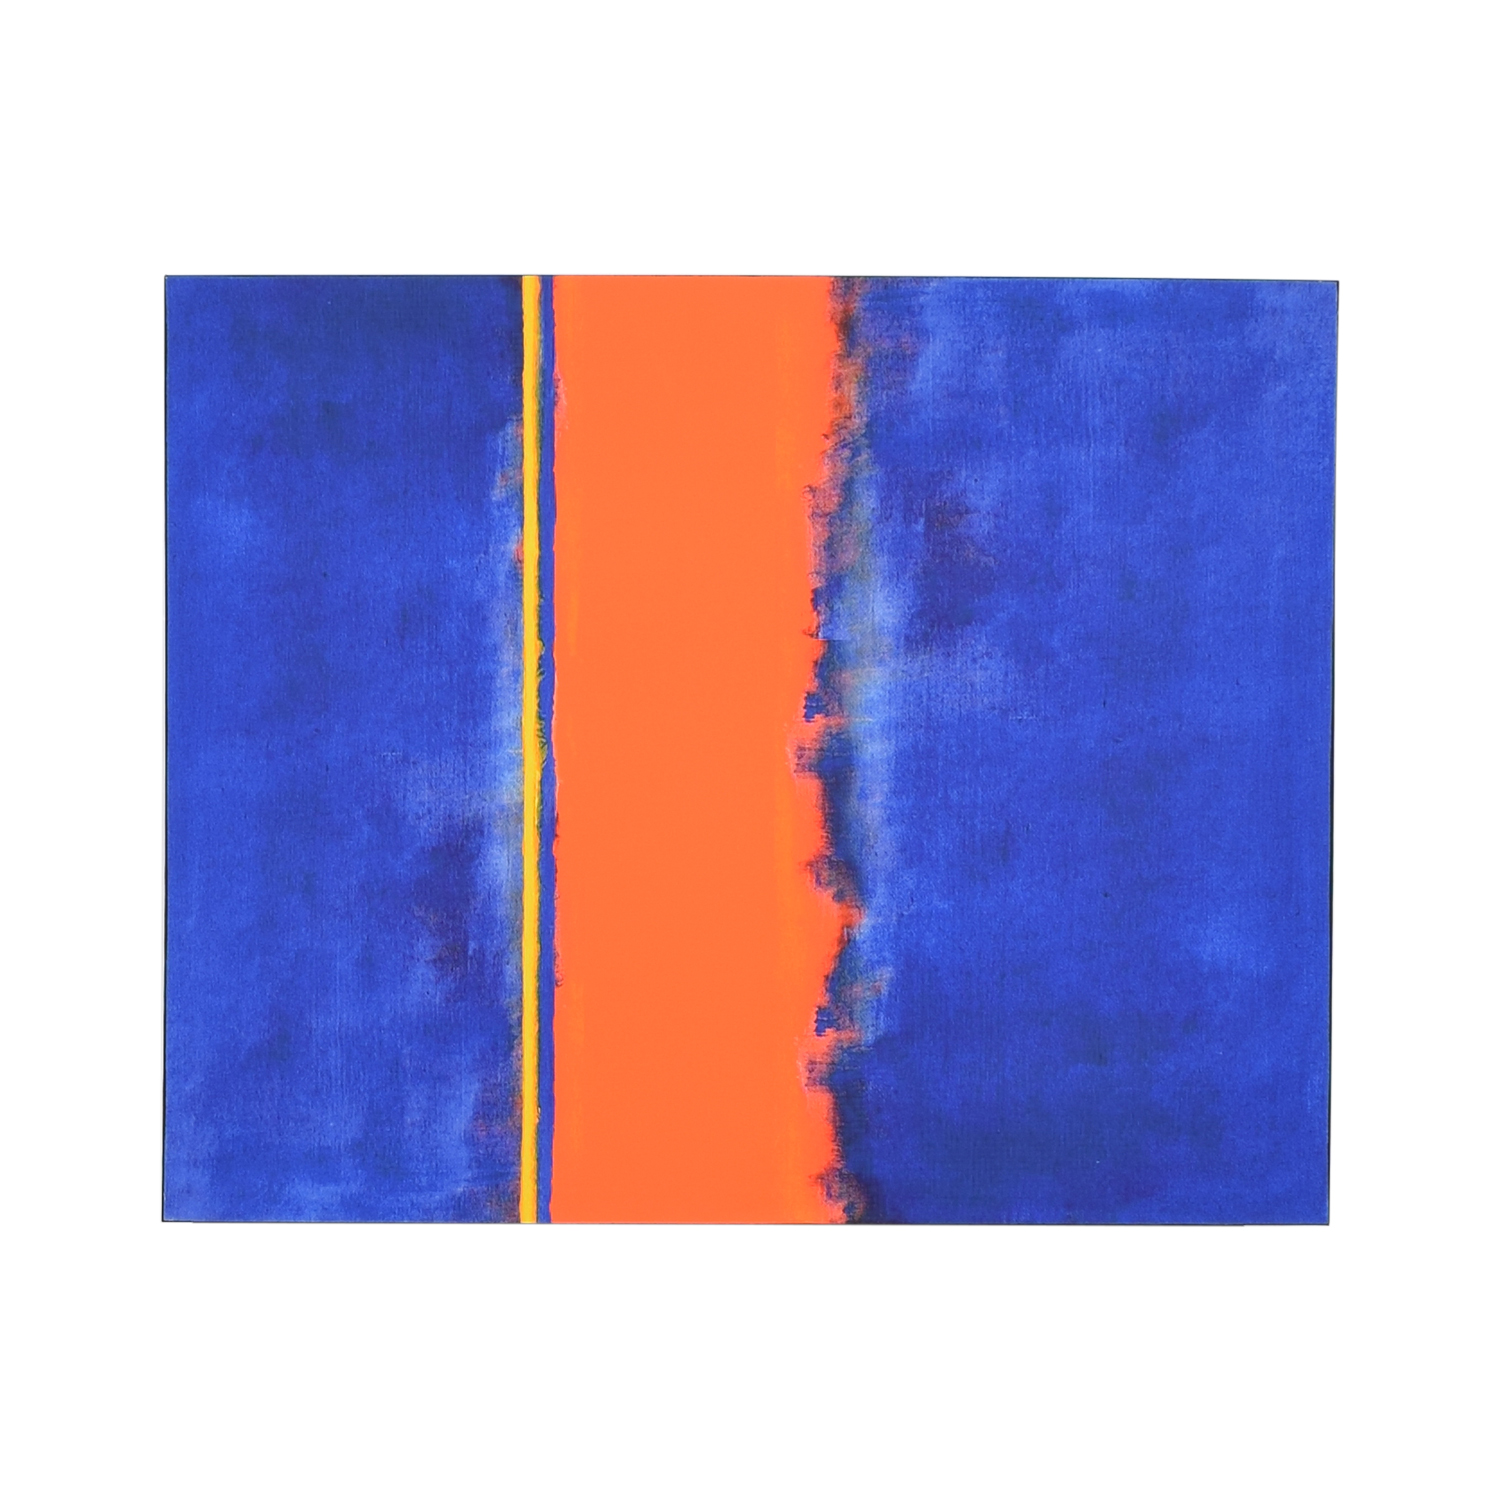 Vibrant Blue and Orange Painting / Decor